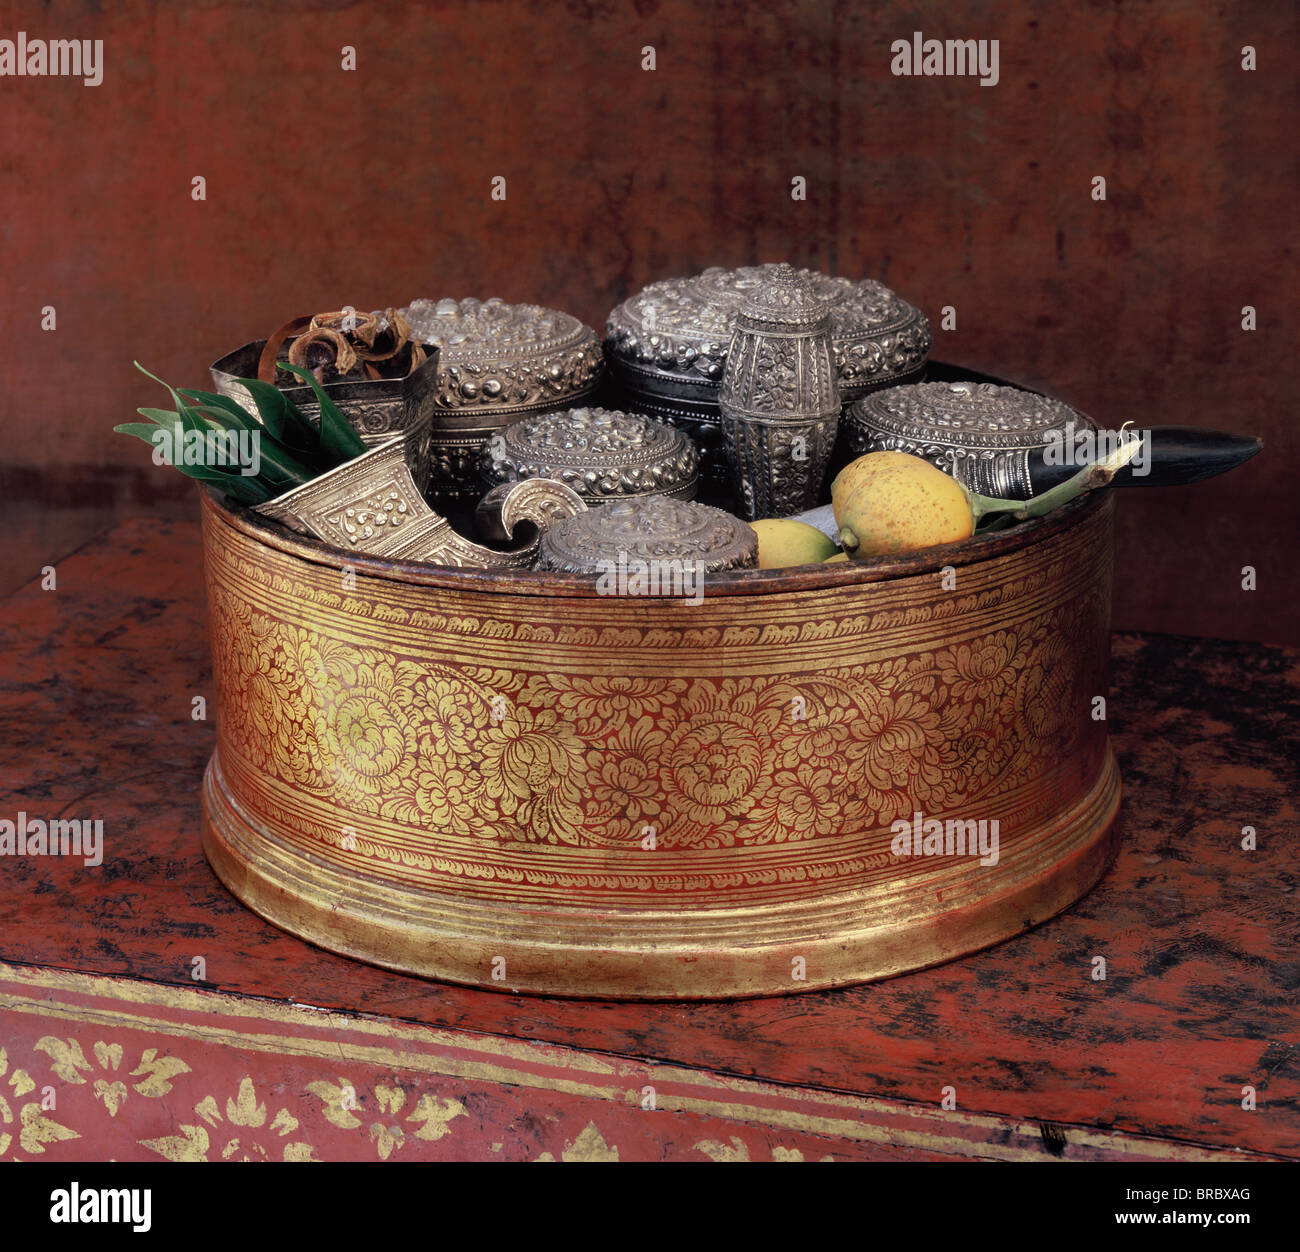 Lanna style lacquerware betel box with a silver set, Northern Thailand, Thailand - Stock Image